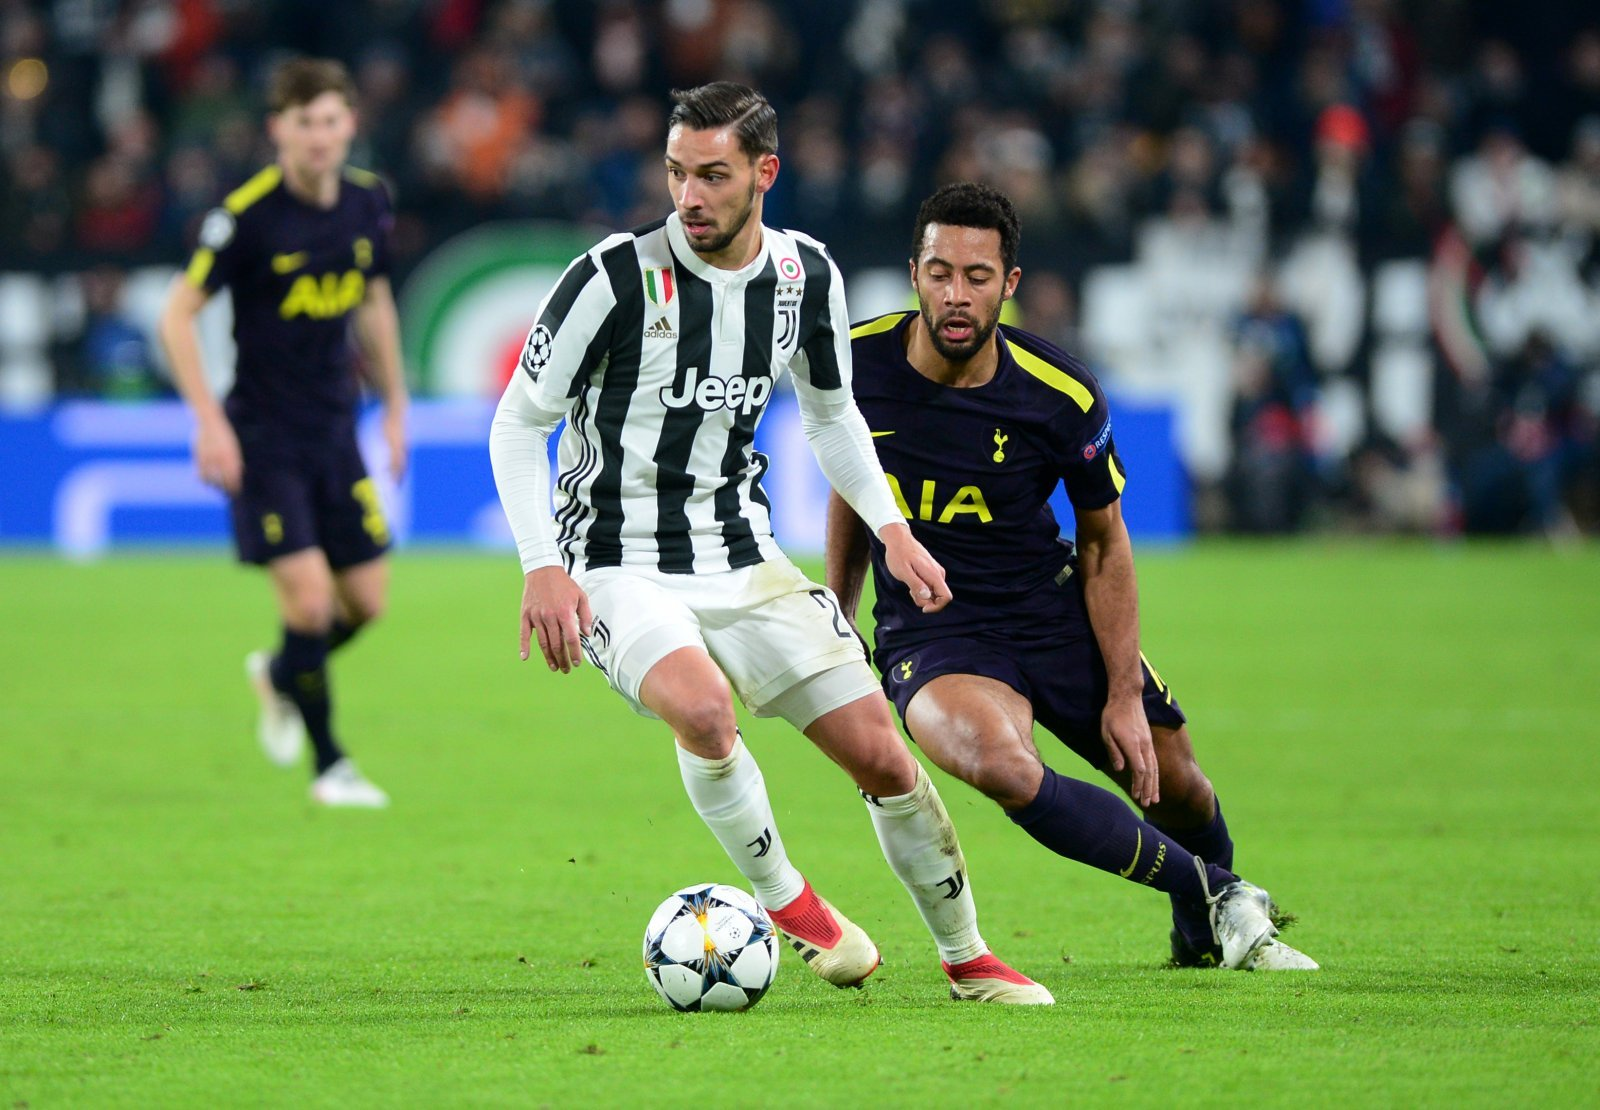 Manchester United should push for a swap deal with Juventus for De Sciglio